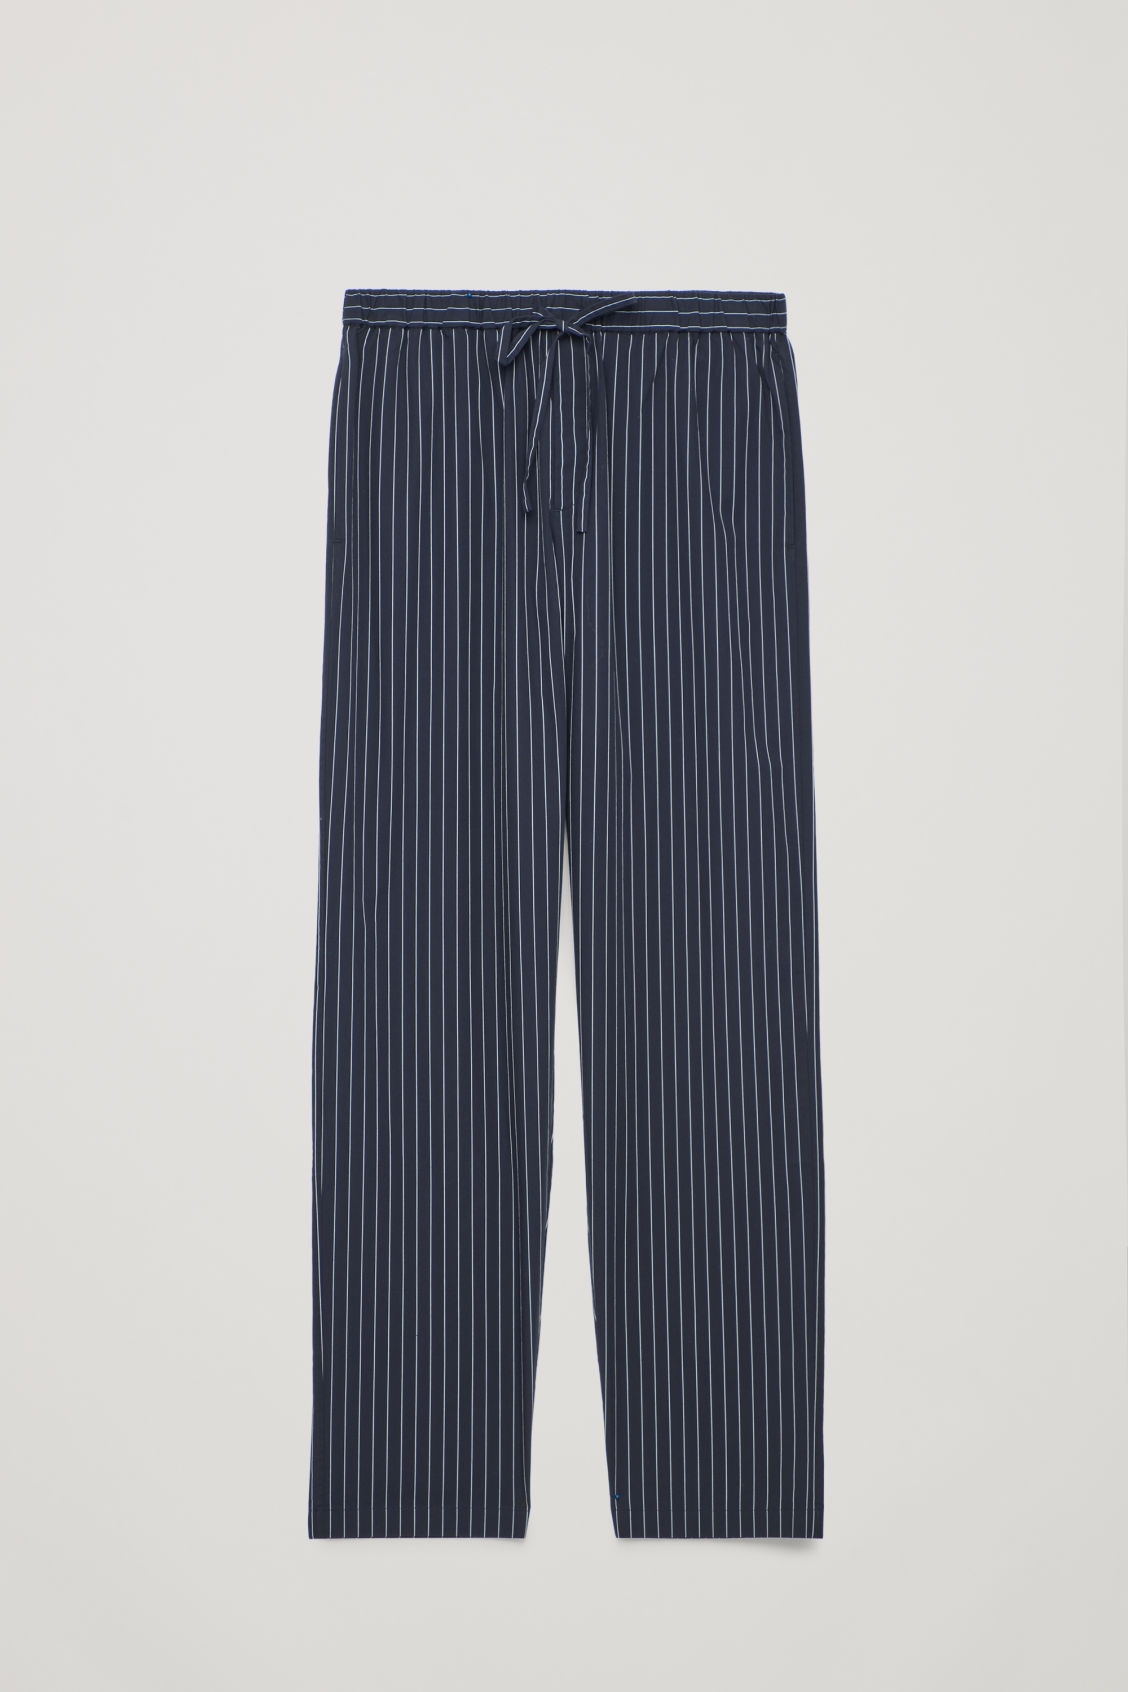 COS PINSTRIPED PYJAMA TROUSERS